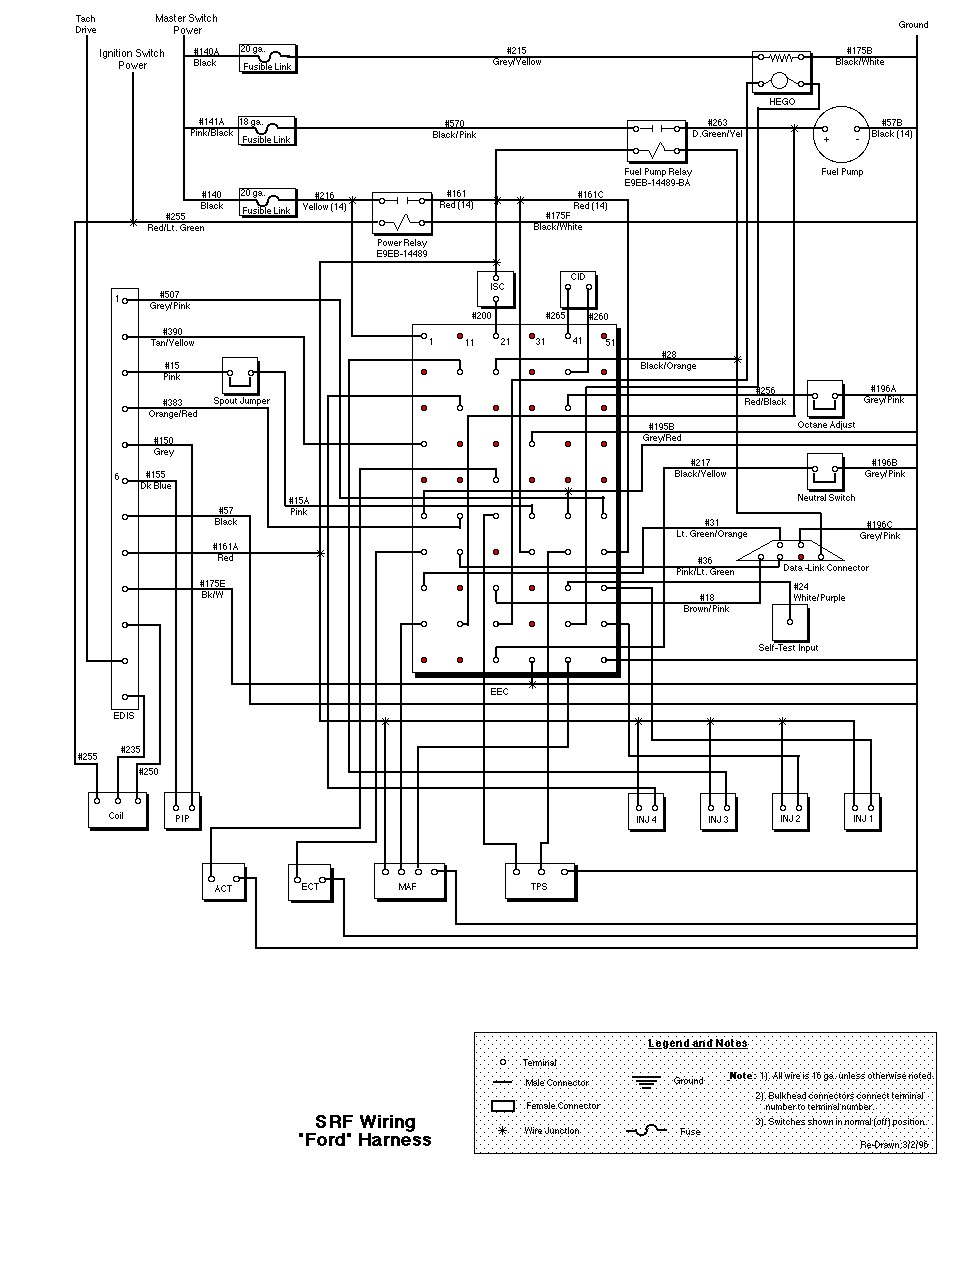 SRF_Ford_Wiring_Big srf wiring diagrams 1995 ford l9000 wiring schematics at gsmx.co